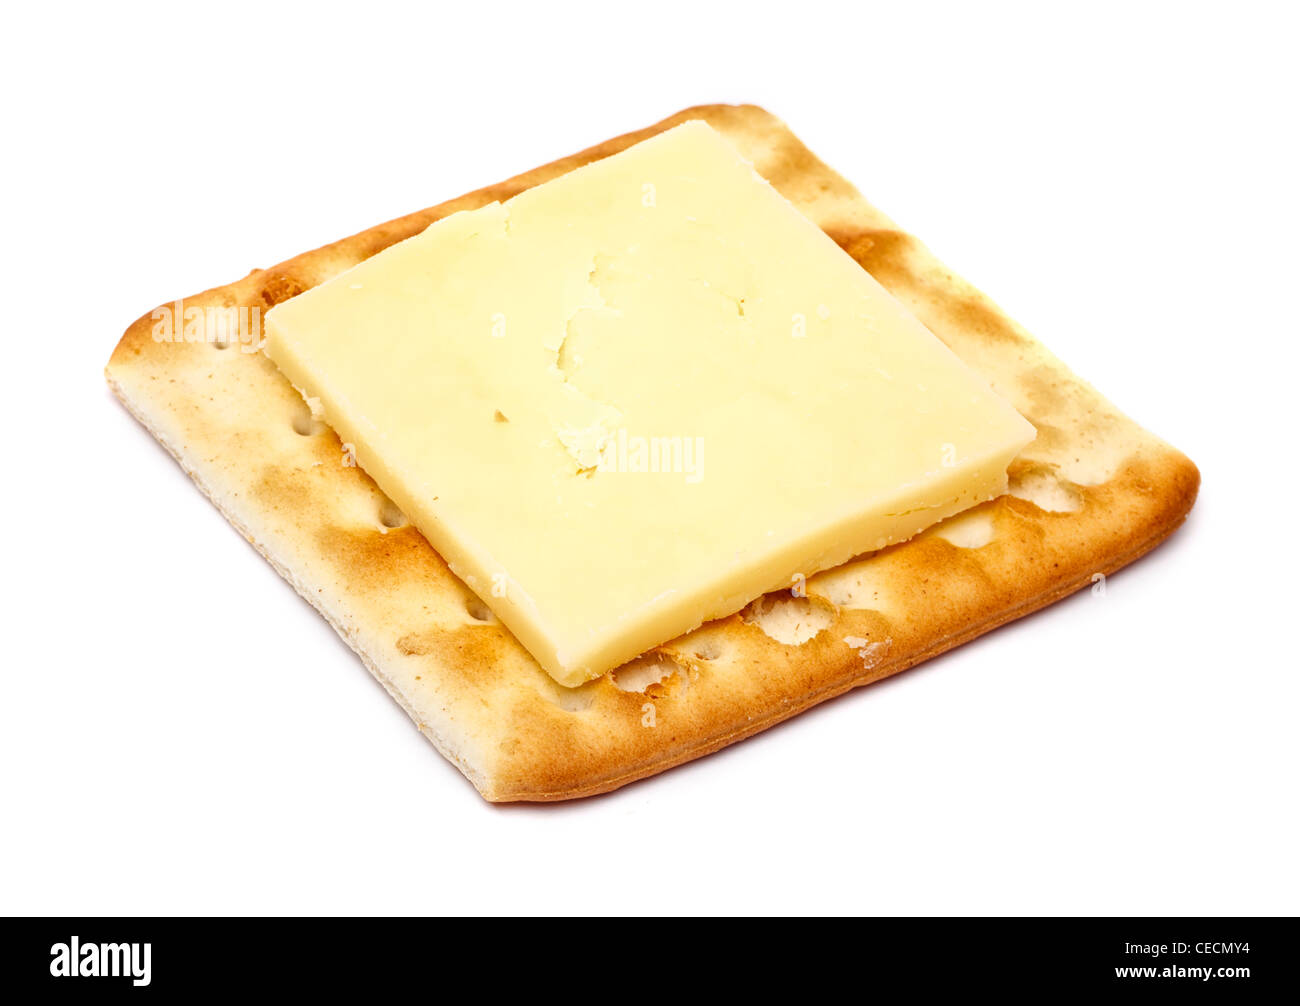 Cheddar cheese on a cracker - white background - Stock Image